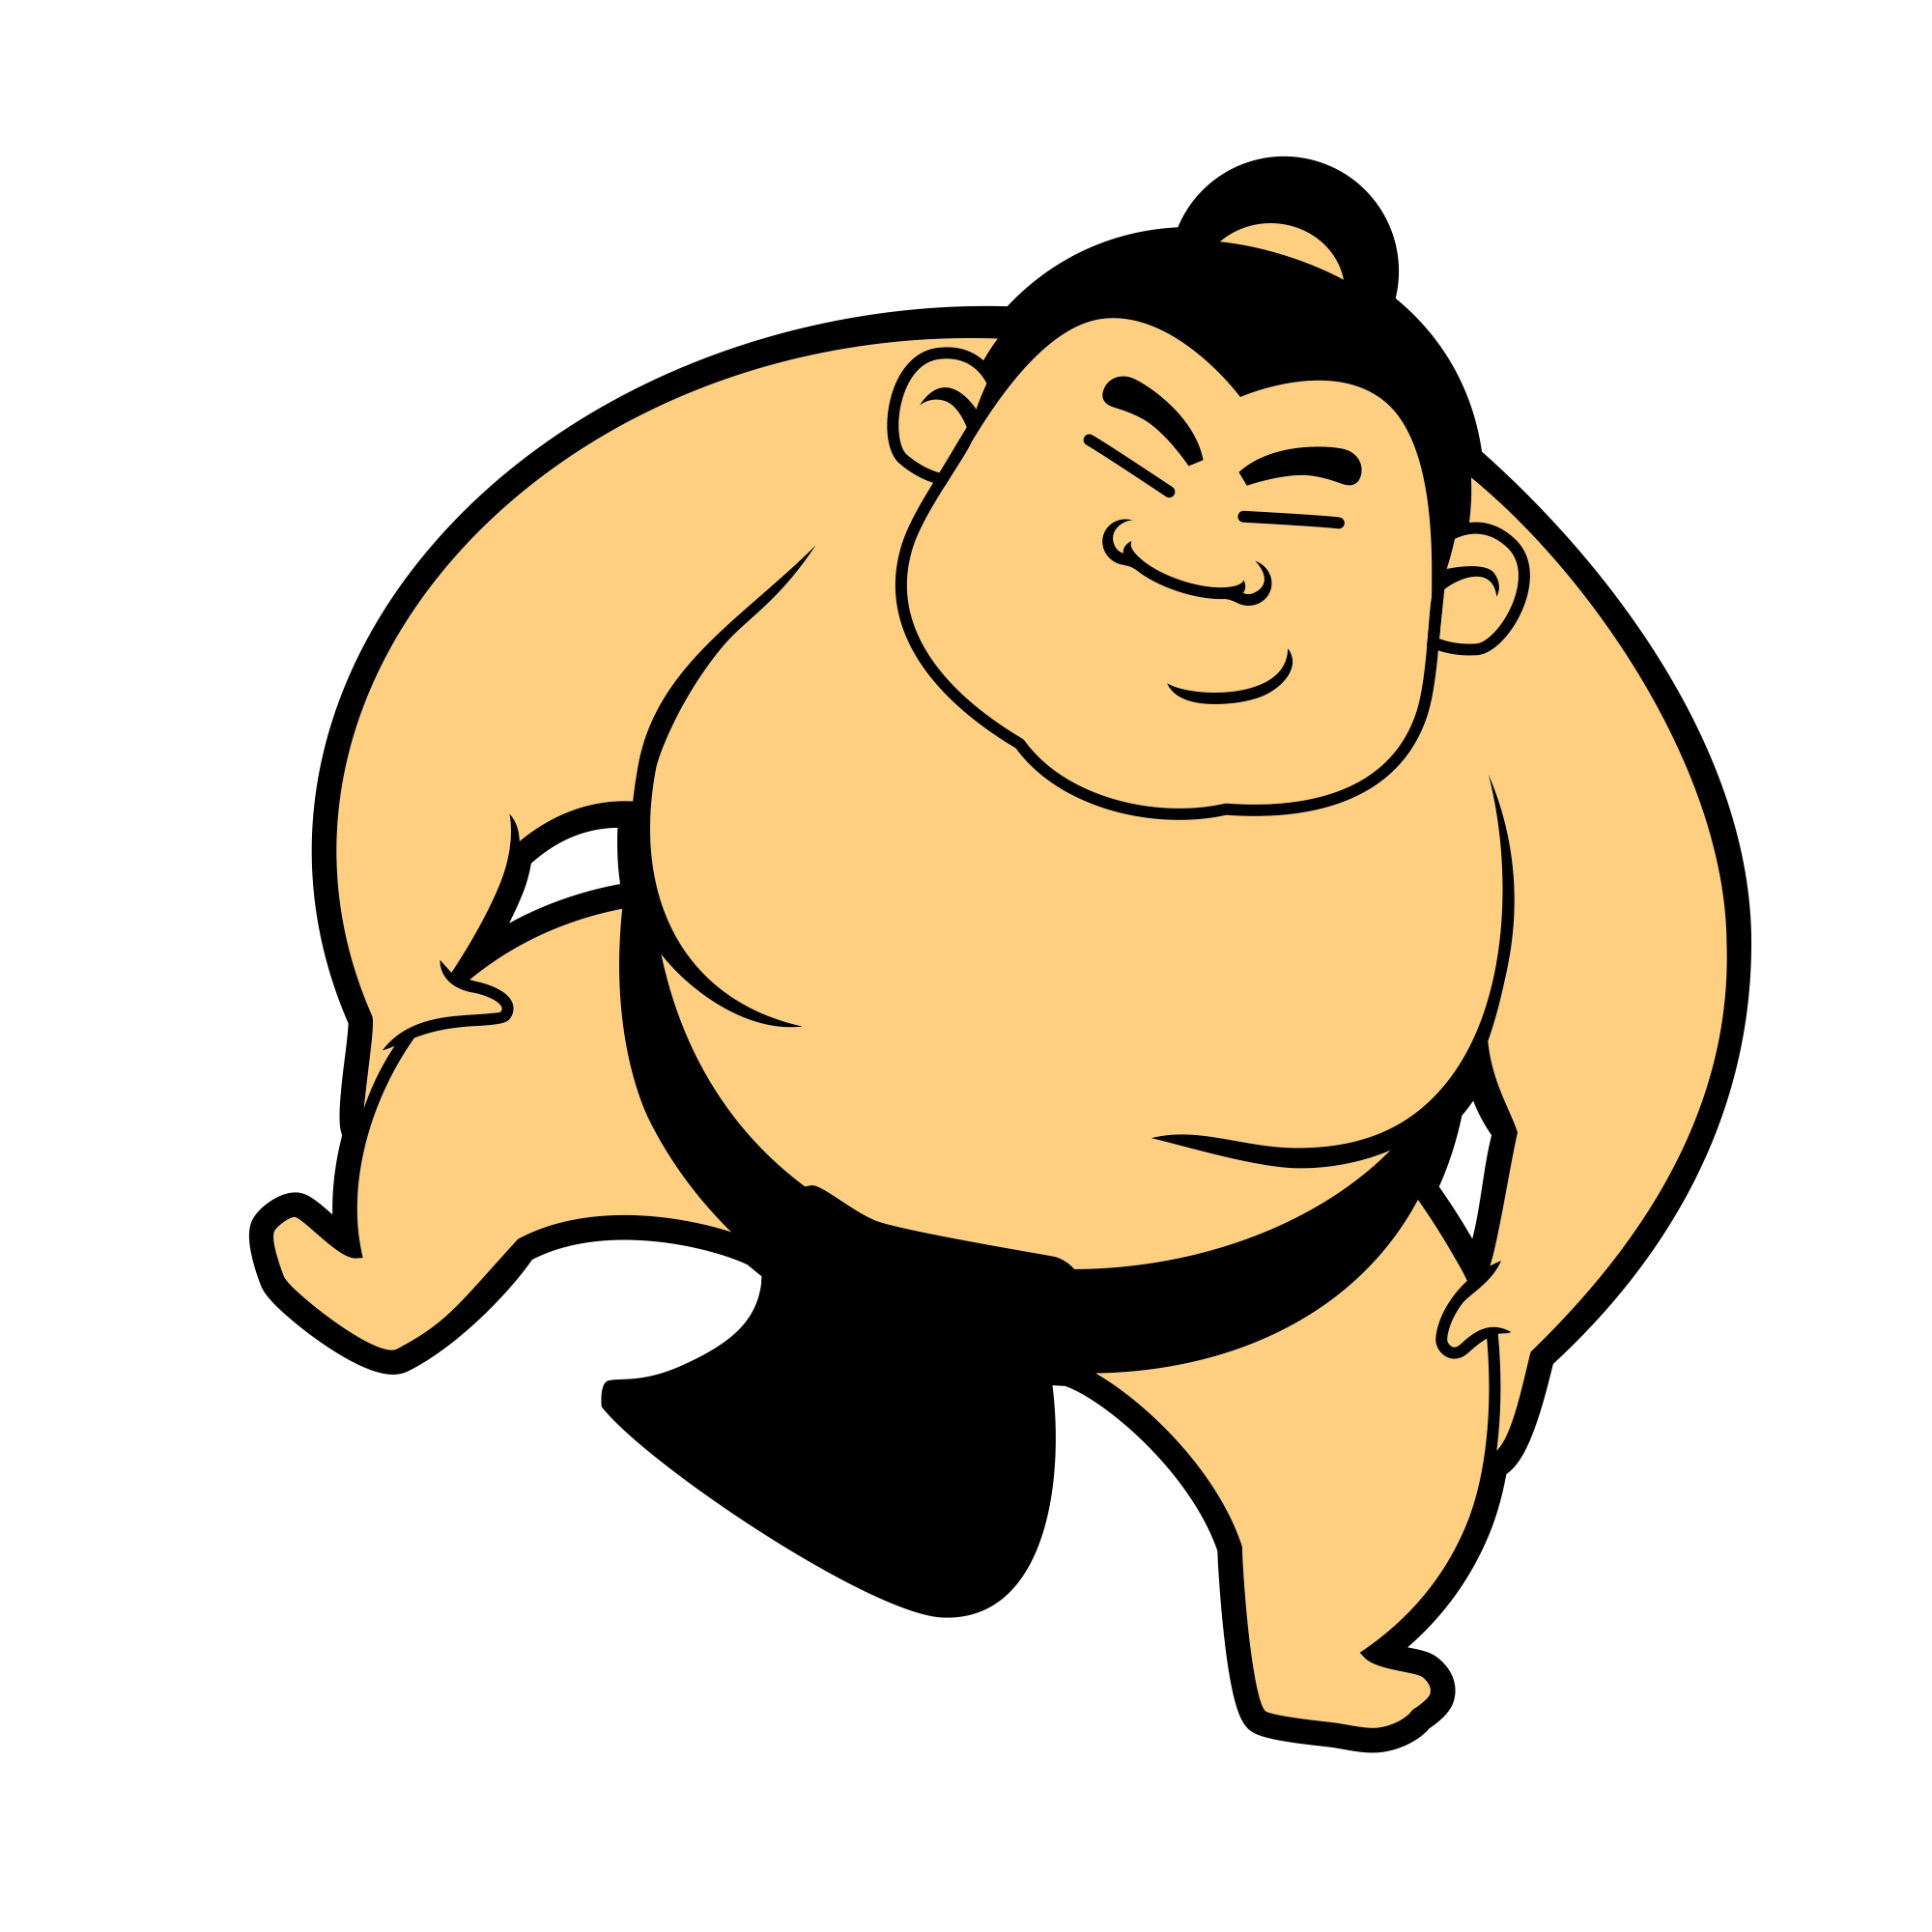 Sumo transparent png stickpng. Clipart sports character